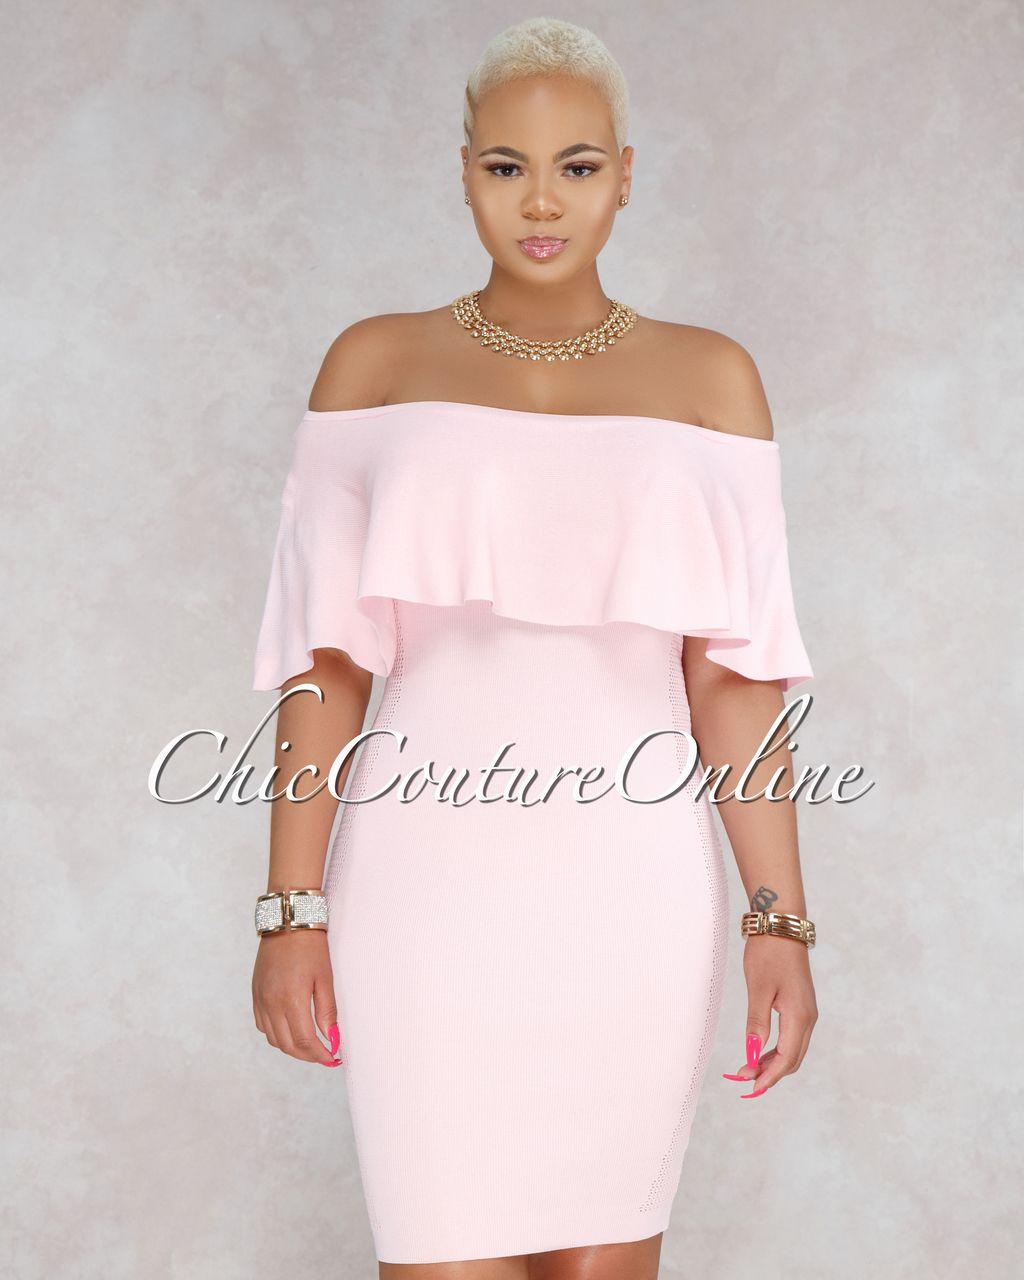 71ccca134098 Chic Couture Online - Sonnie Light Pink Ruffle Off The Shoulder Dress